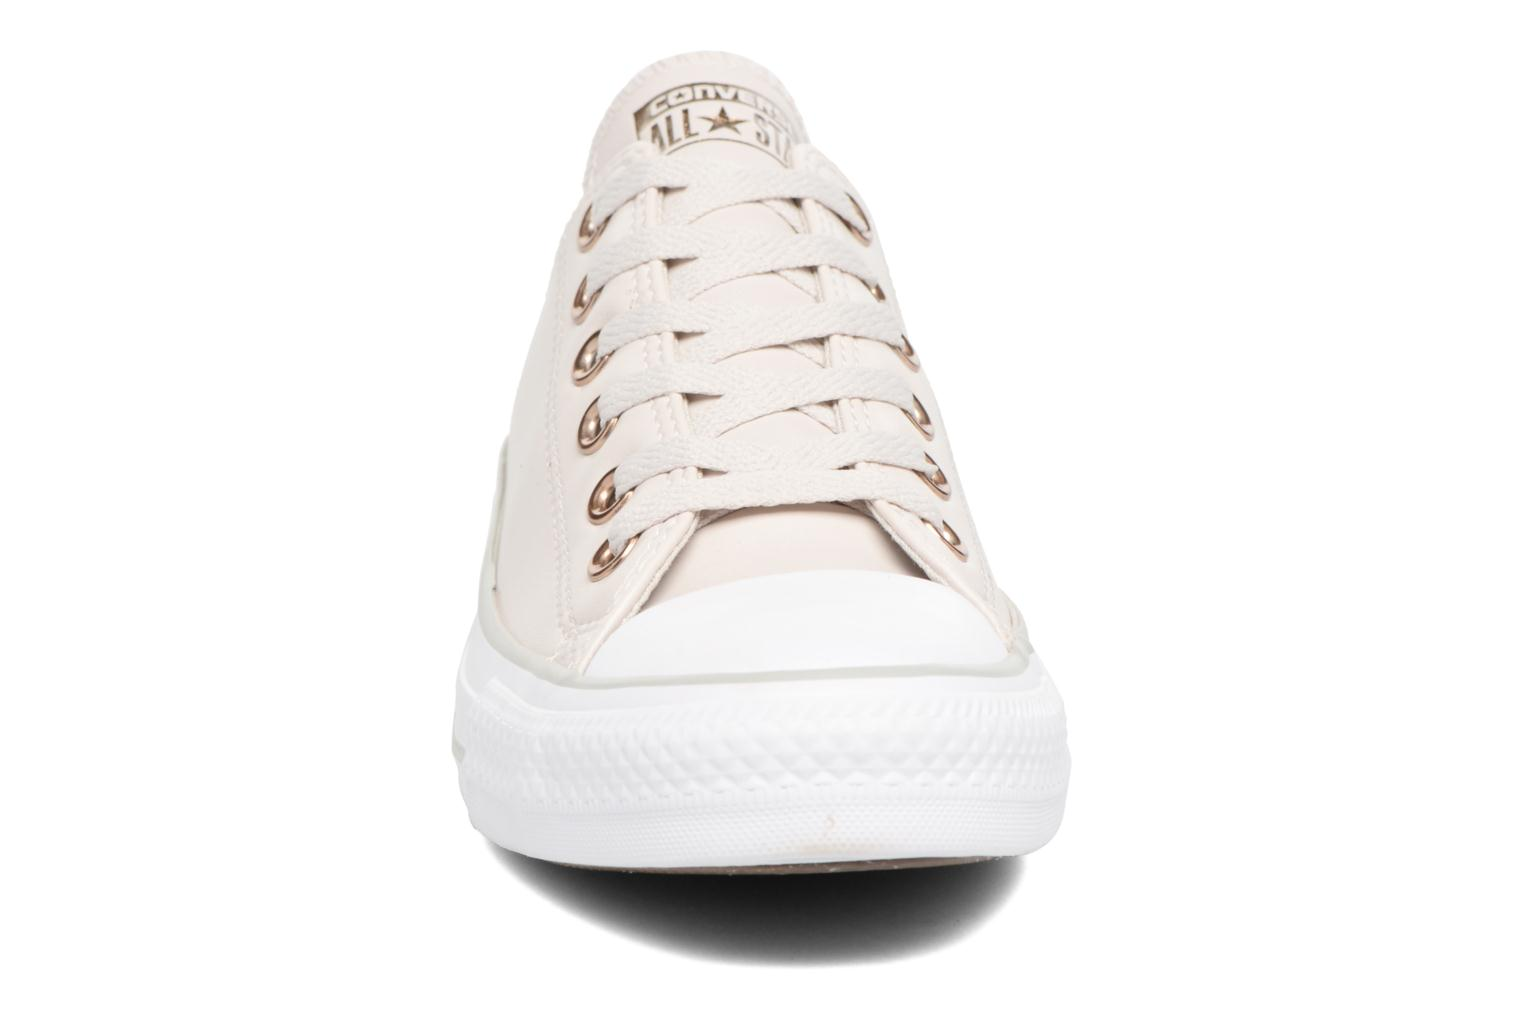 Taylor white Ox Star Craft Putty mouse Converse Sl Chuck Pale All zxwHfq5Y